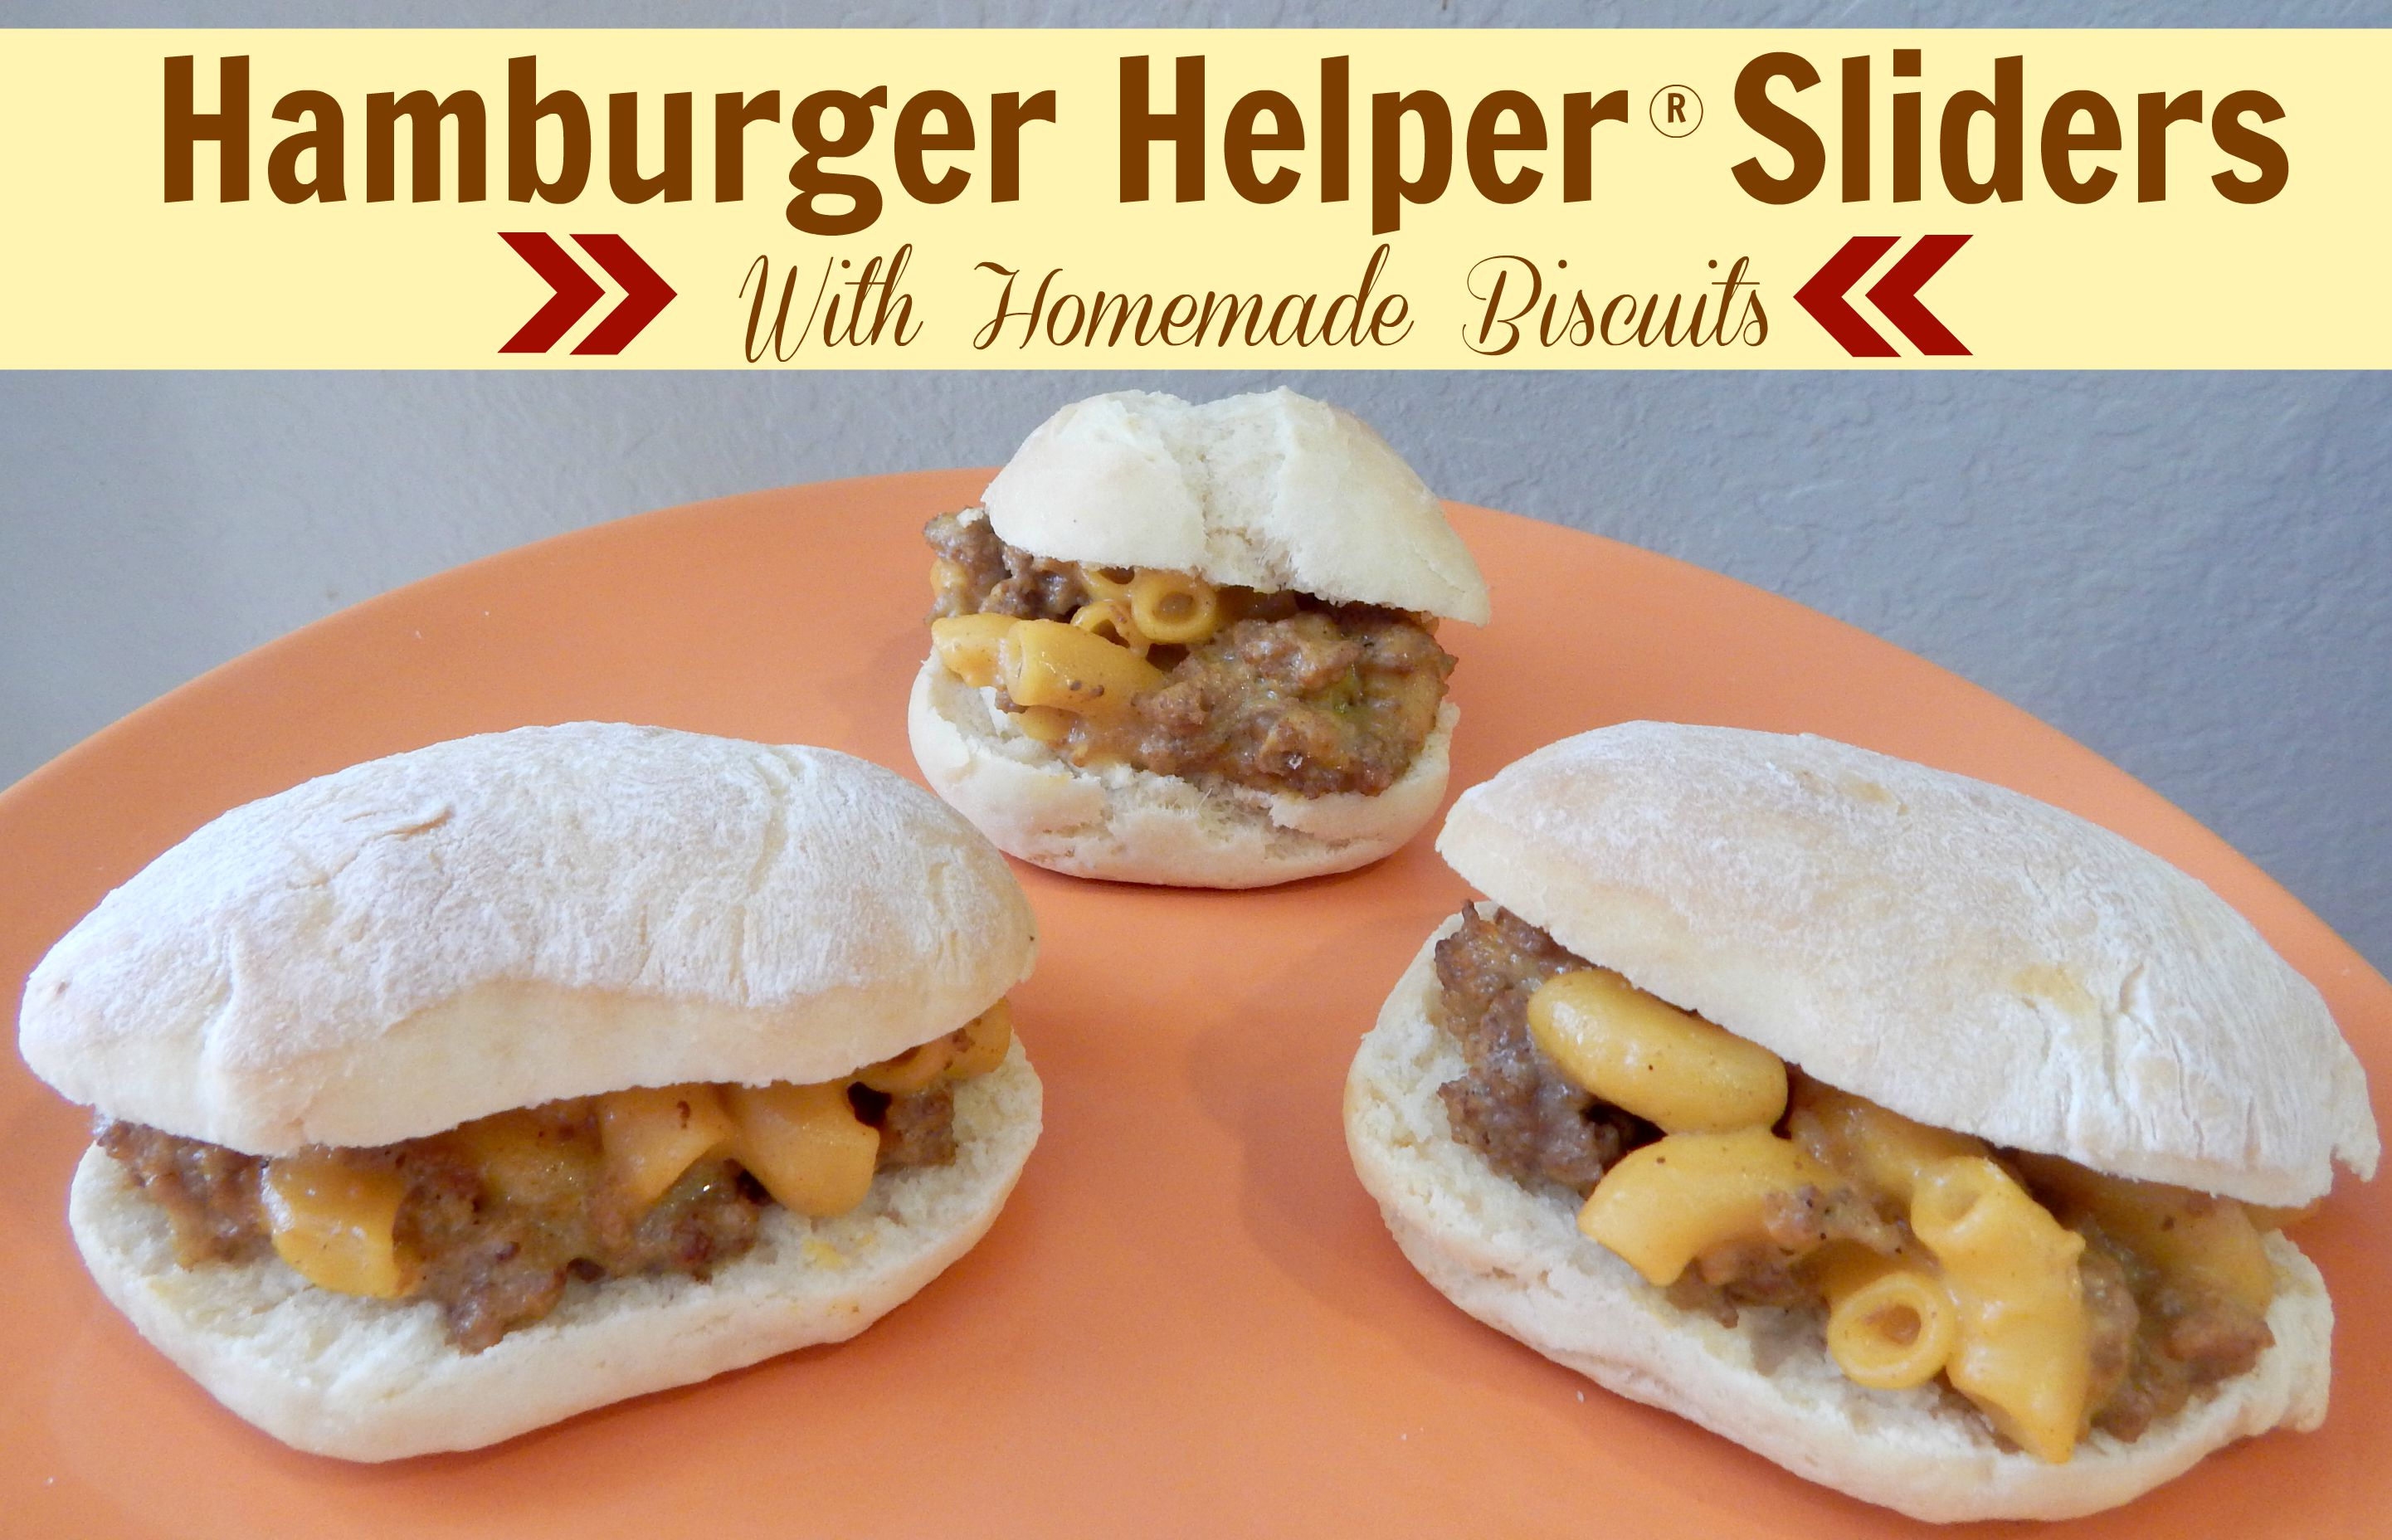 Hamburger Helper Sliders With Homemade Biscuits